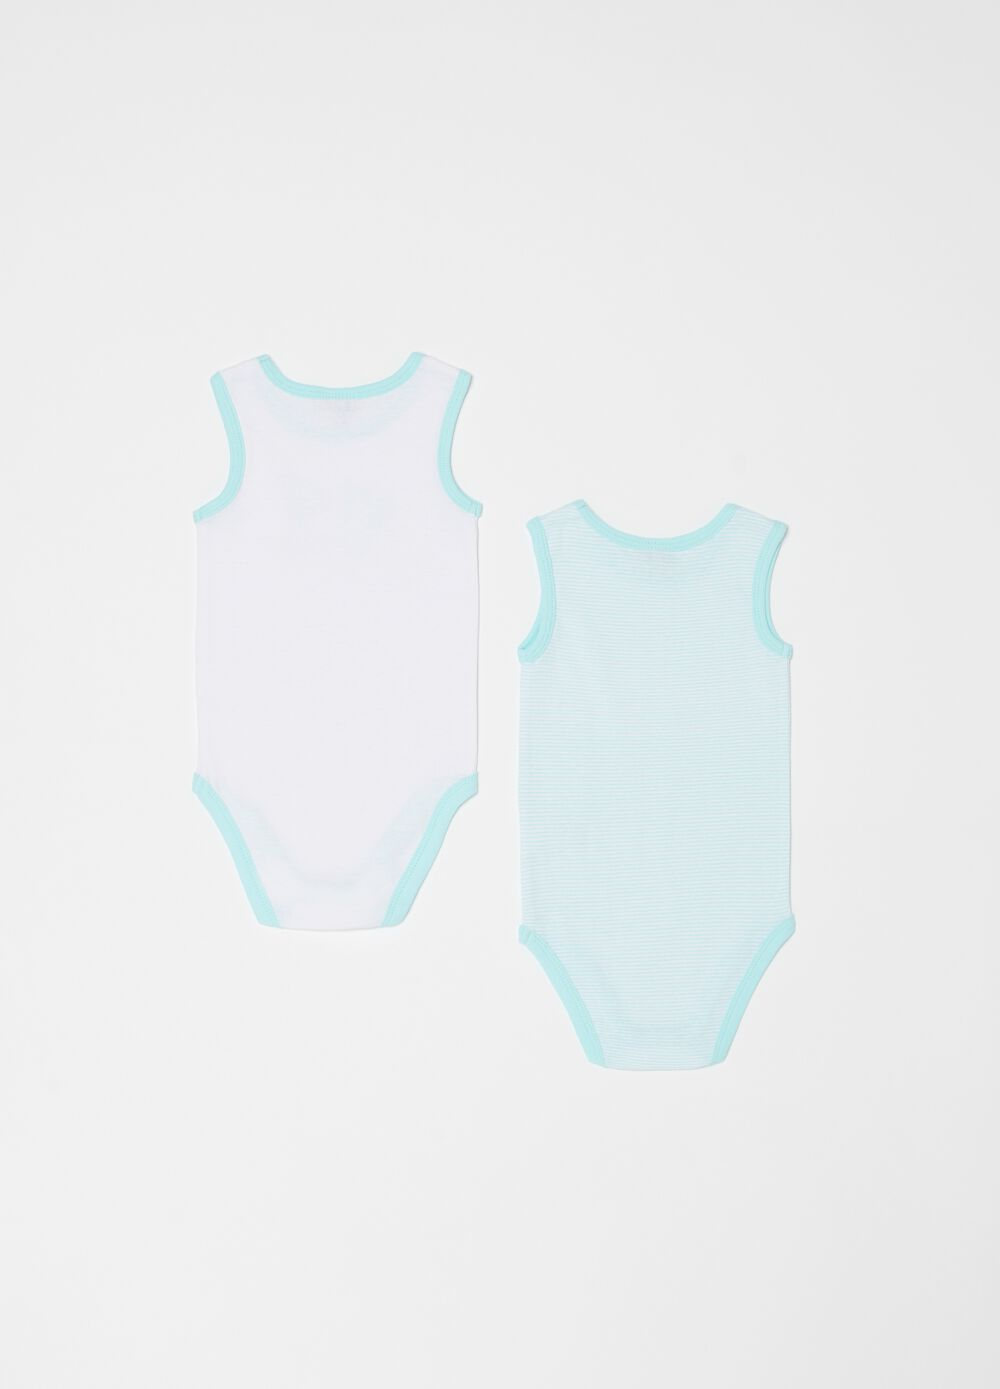 Two-pack of sleeveless patterned bodysuits